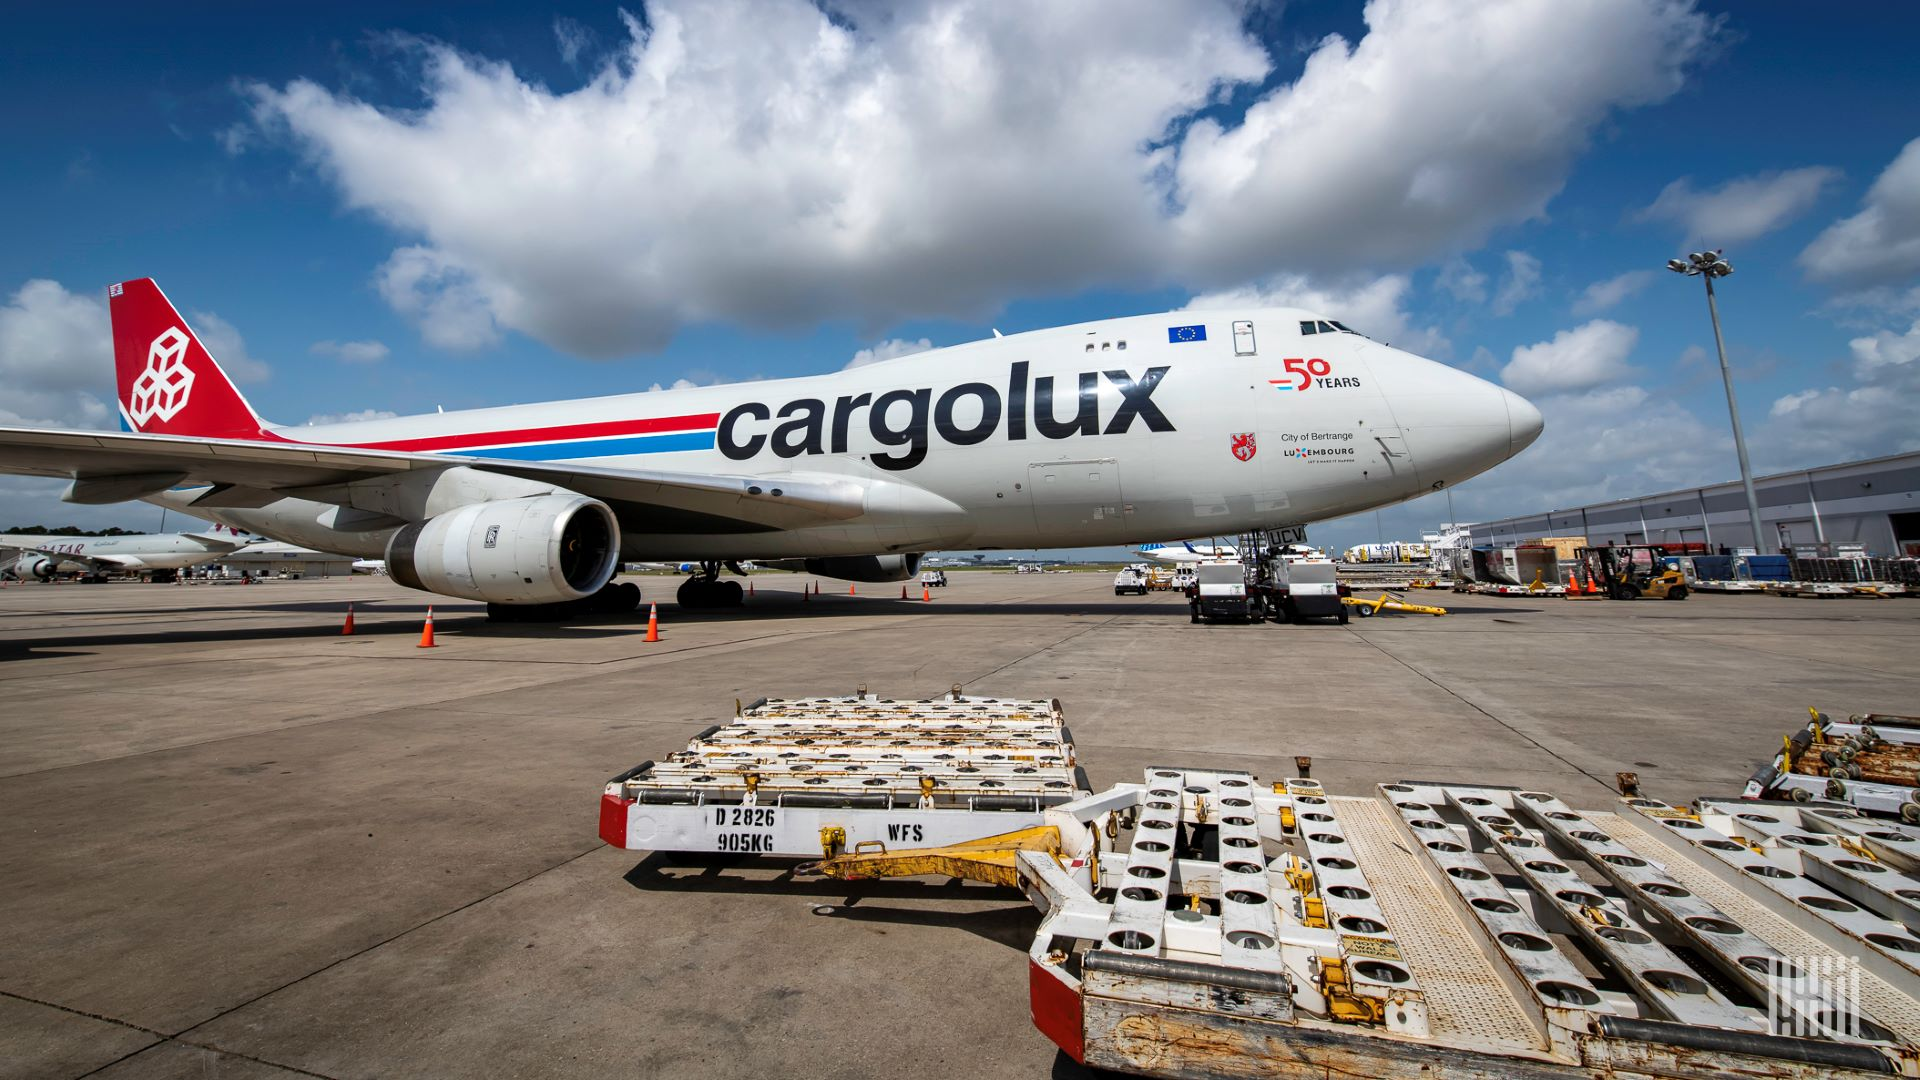 A Cargolux 747 cargo plane on the tarmac on a bright day with an empty pallet in the foreground.